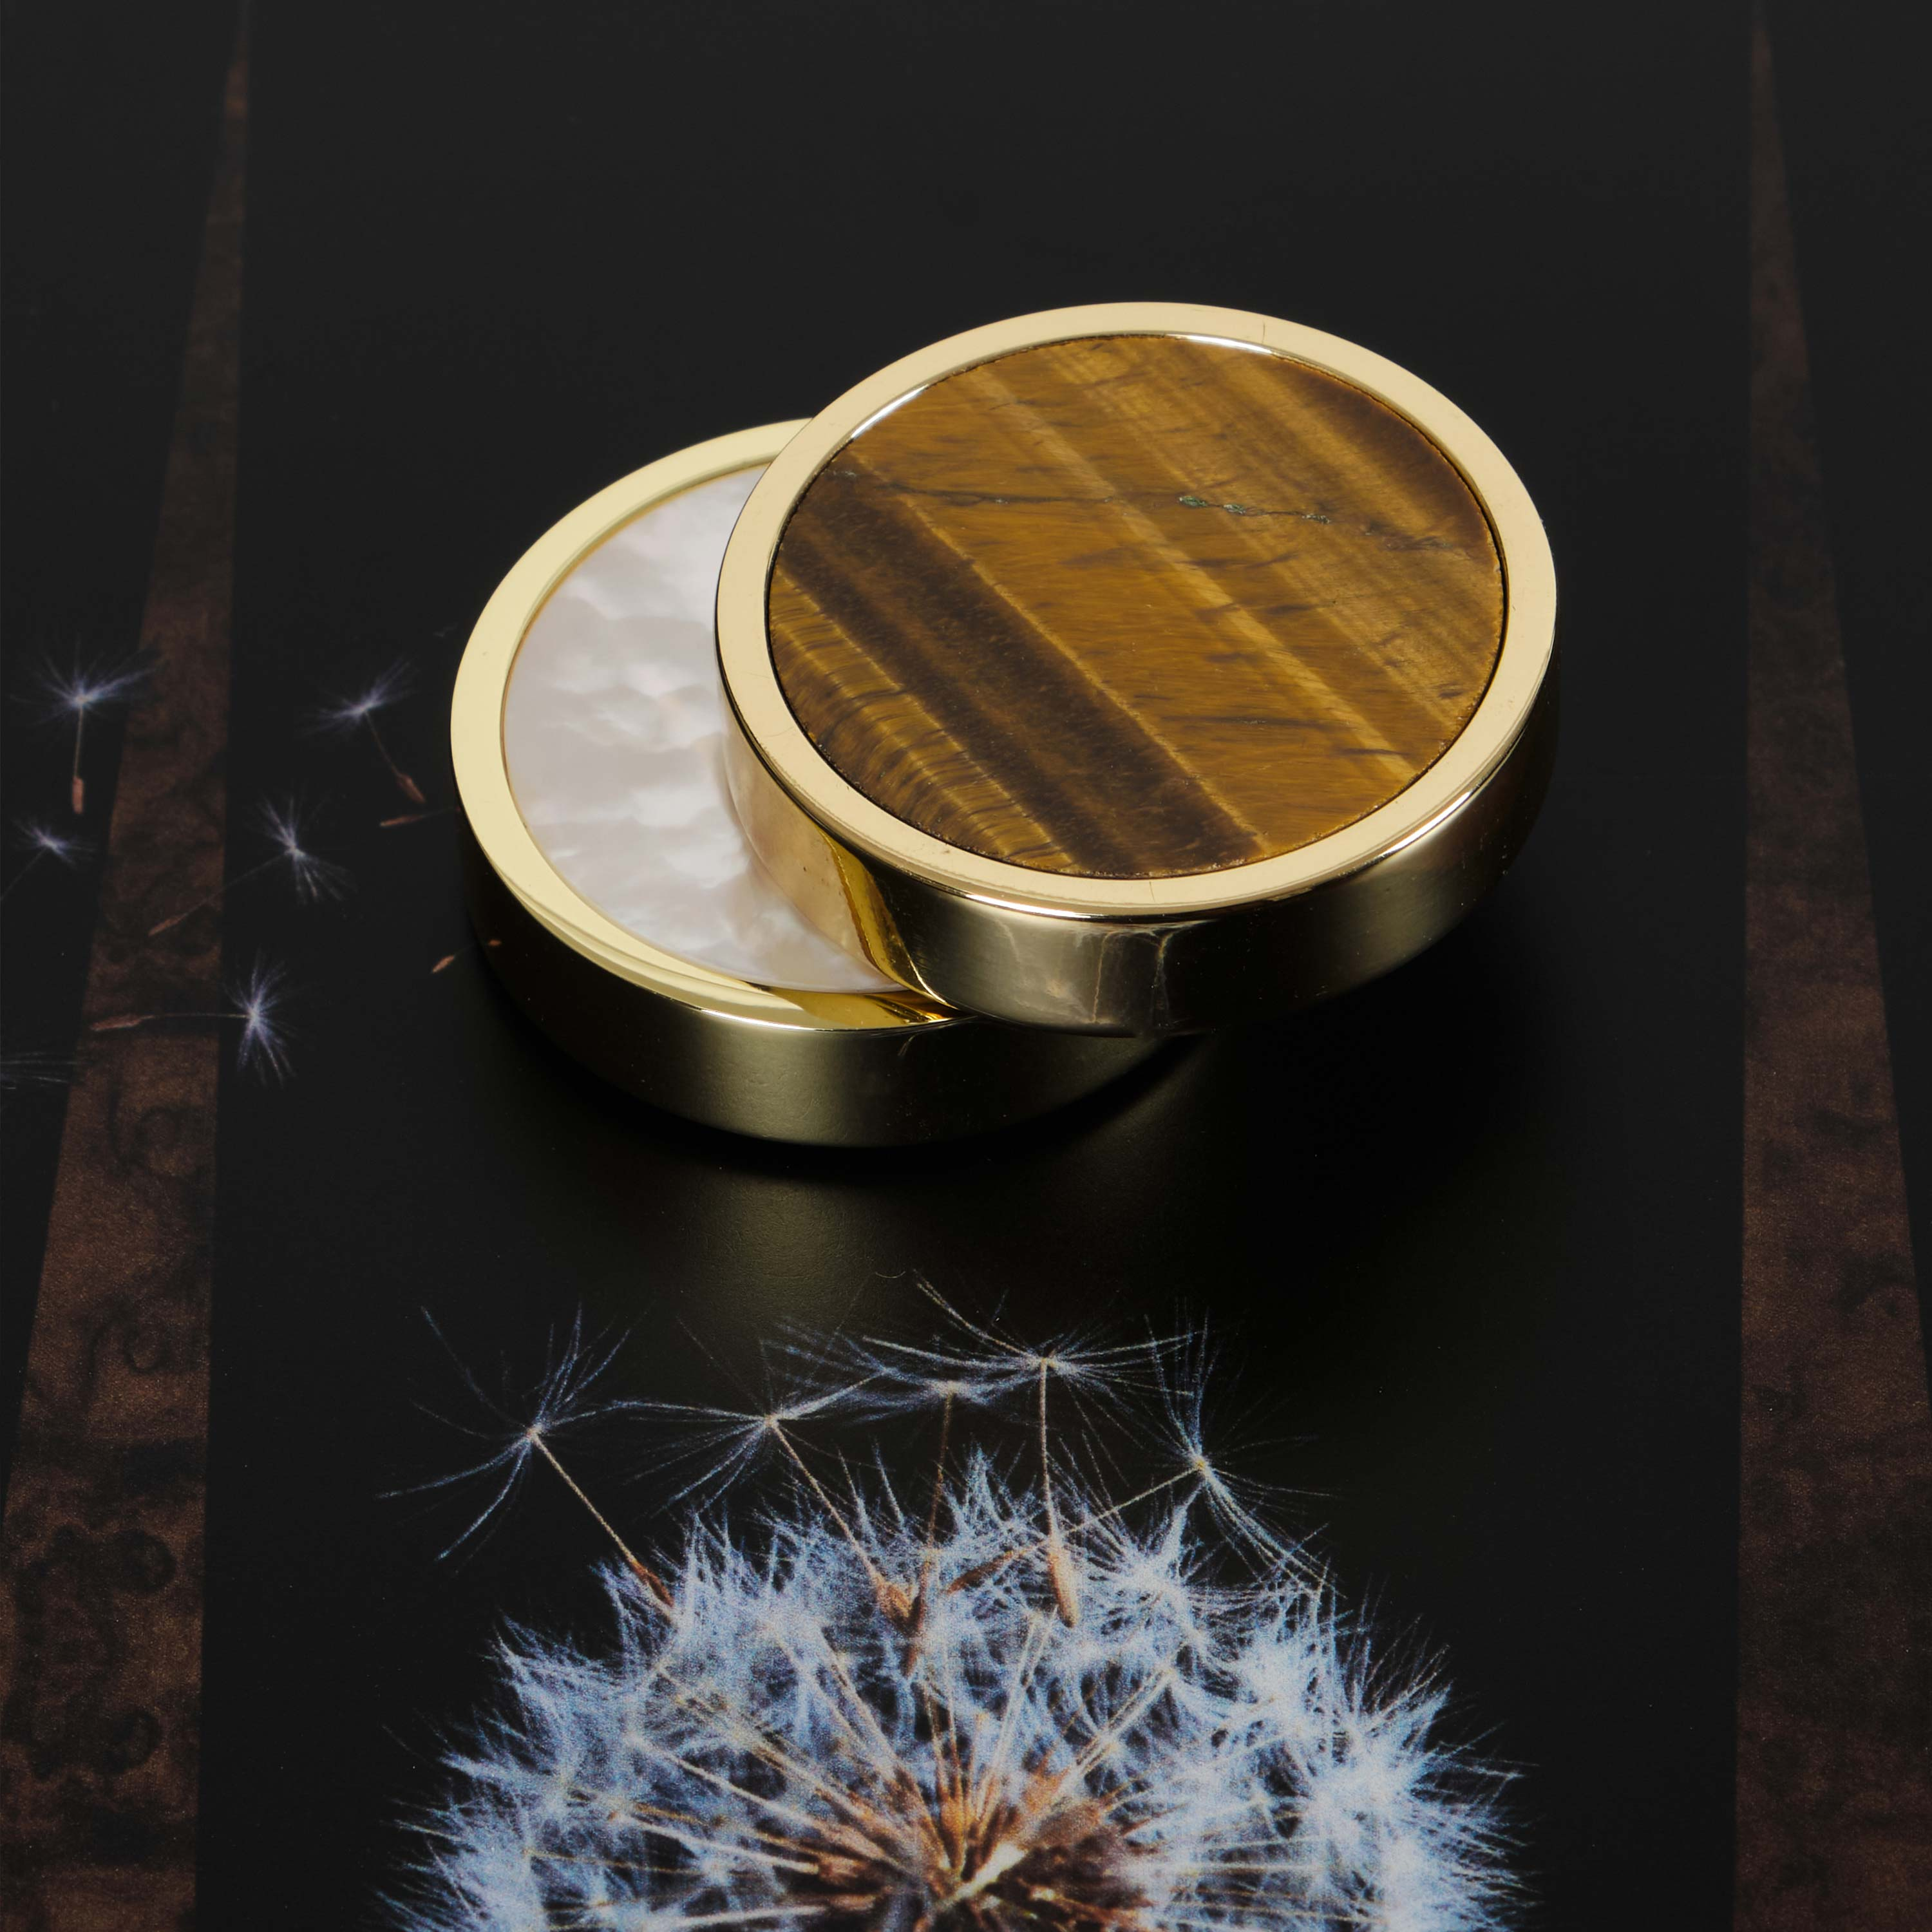 Tiger's Eye and Mother of Pearl playing pieces